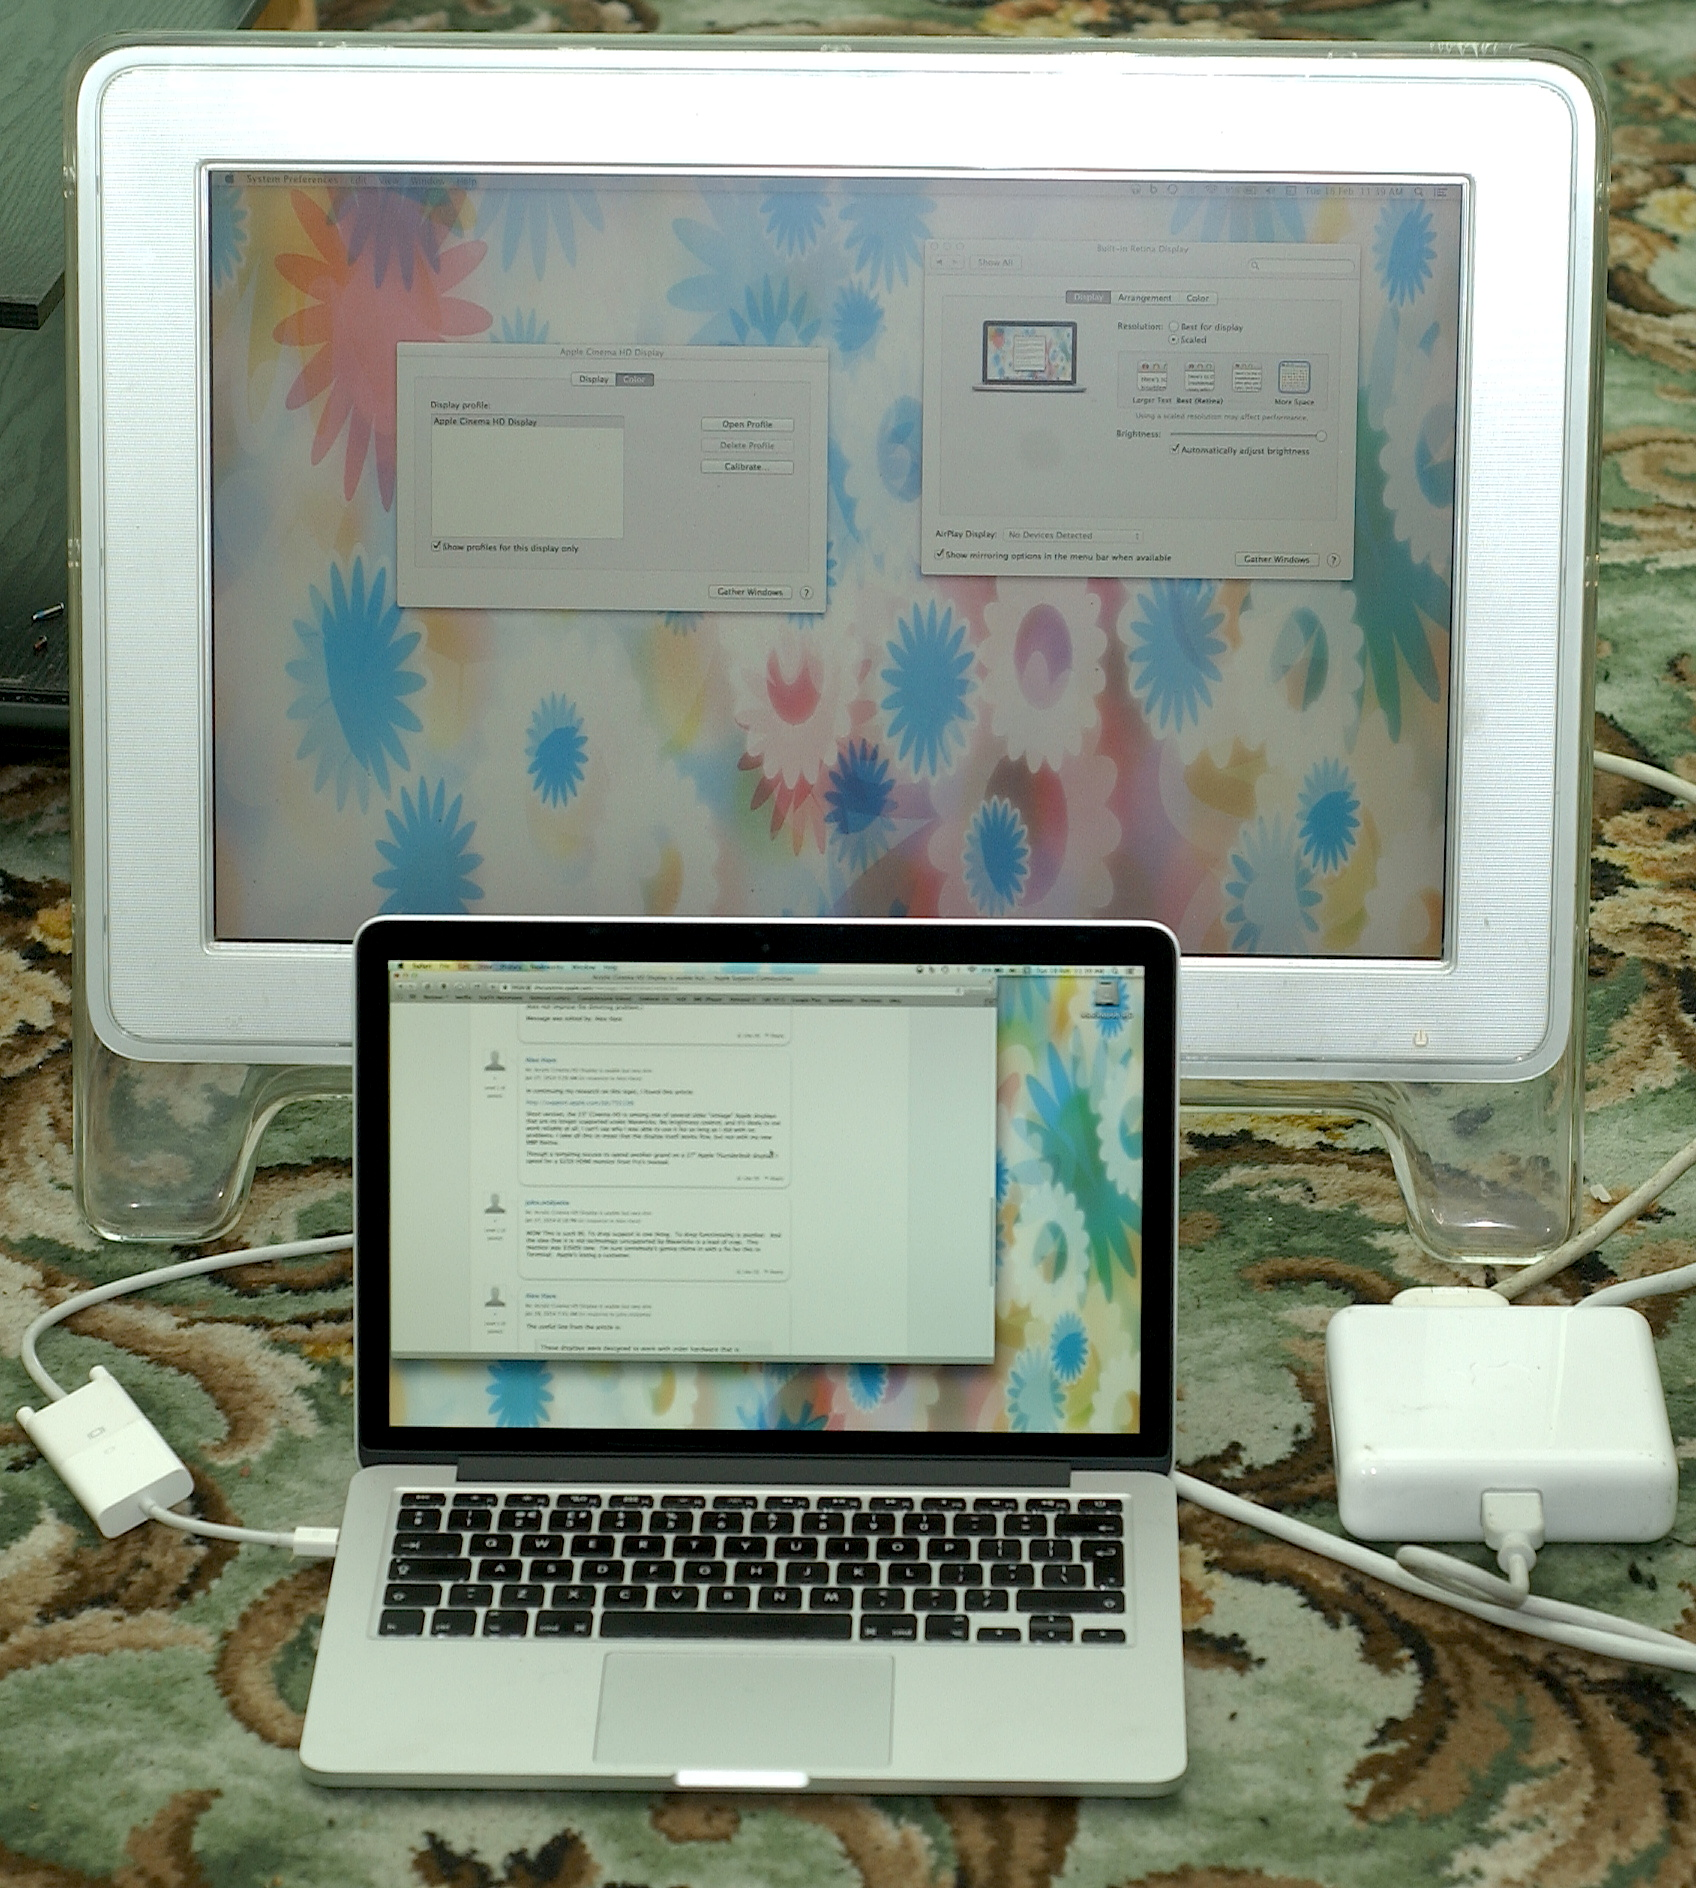 How to use an apple cinema display with a windows laptop / desktop.